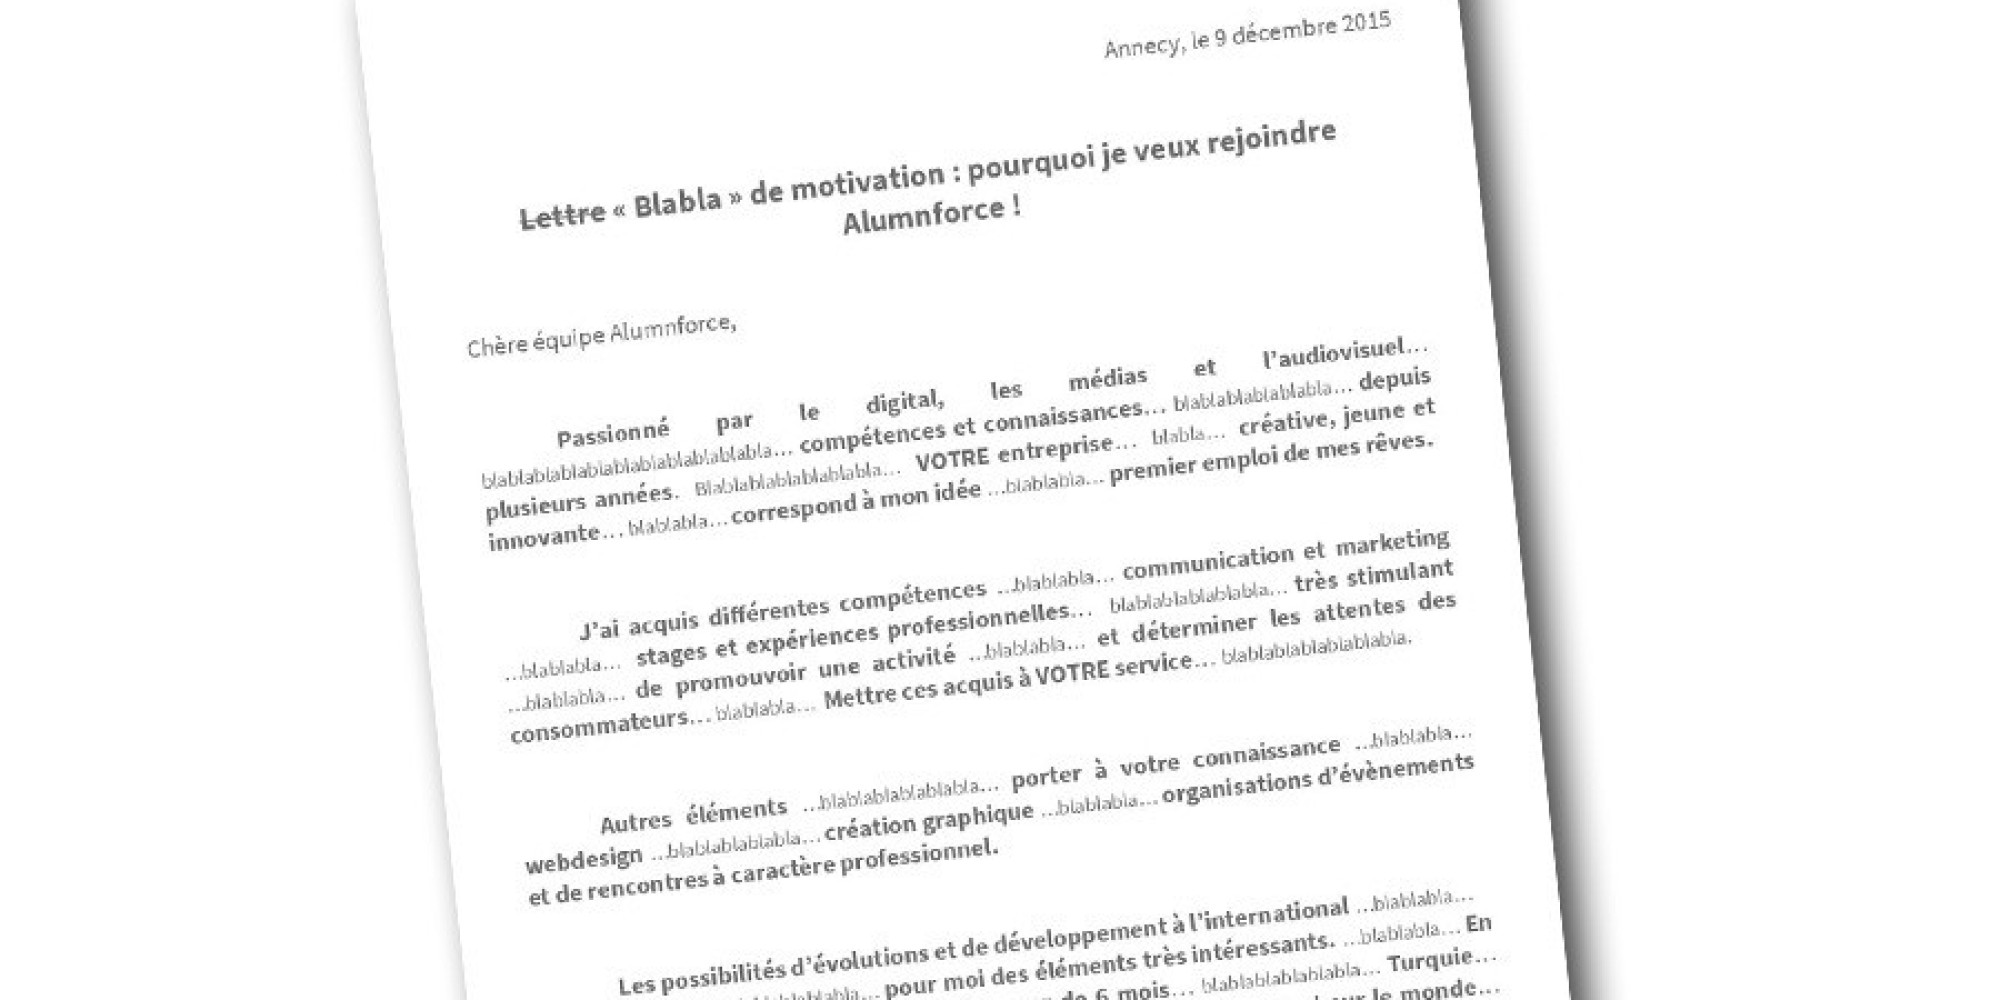 lettre de motivation onu Emploi 2.0   Google+ lettre de motivation onu